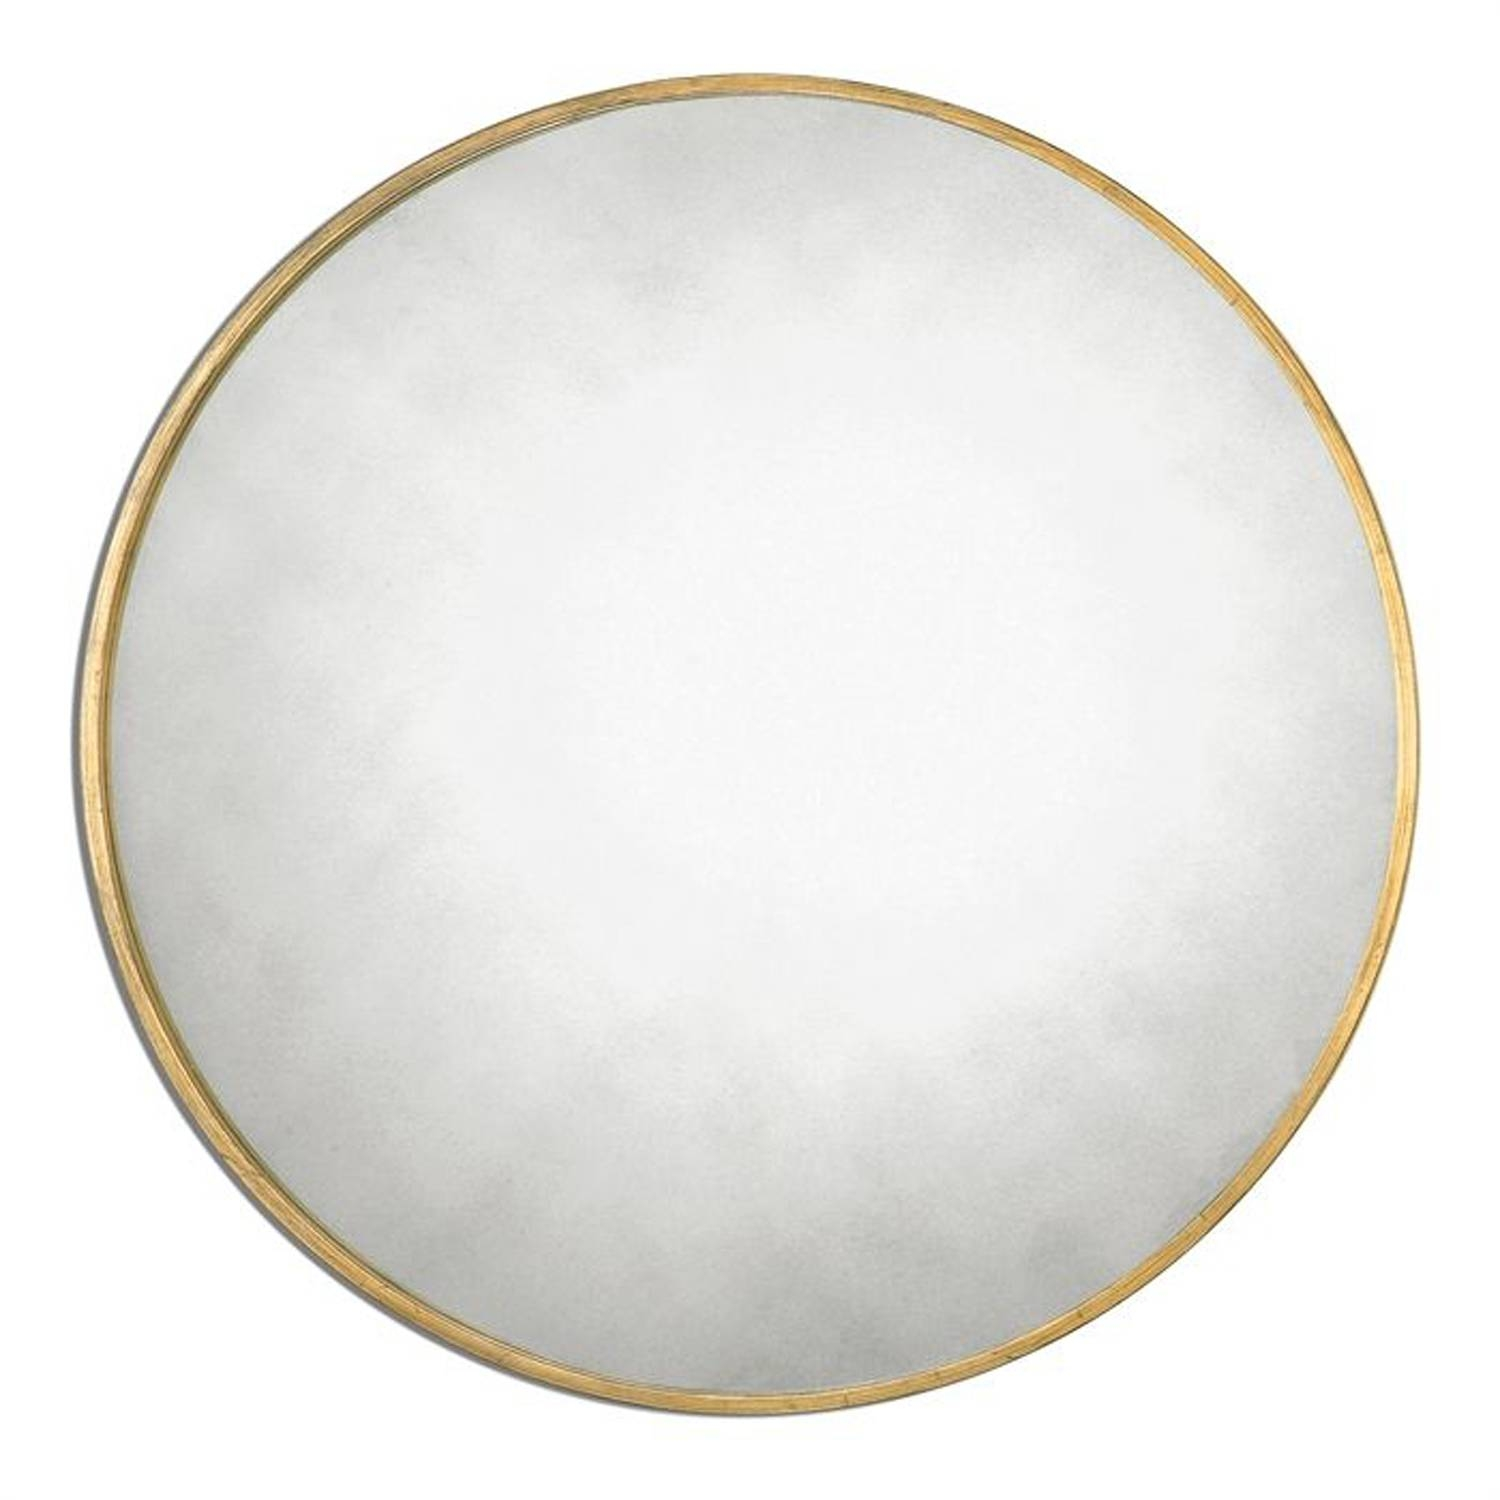 Junius Round Gold Round Mirror Uttermost Wall Mirror Mirrors Home pertaining to Round Large Mirrors (Image 9 of 25)